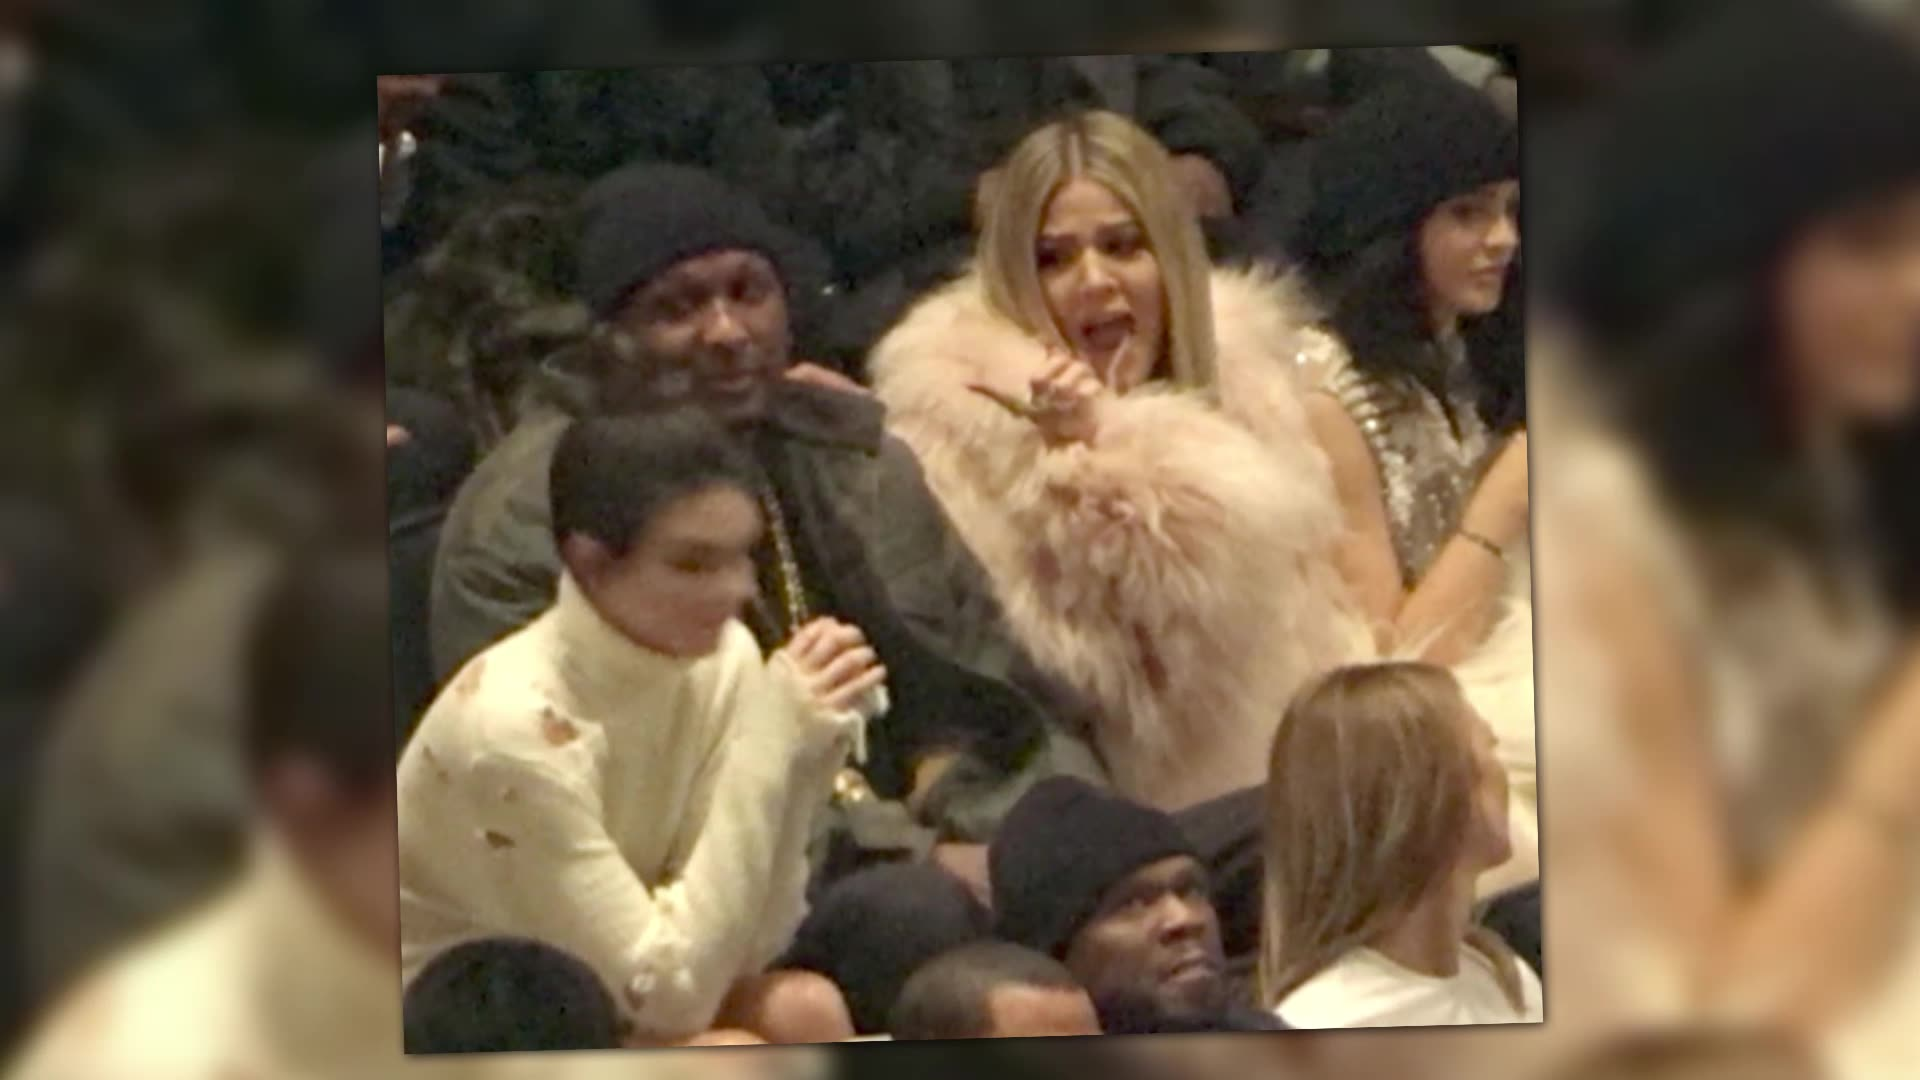 Khloe Kardashian Out with Lamar Odom at Yeezy Launch Party